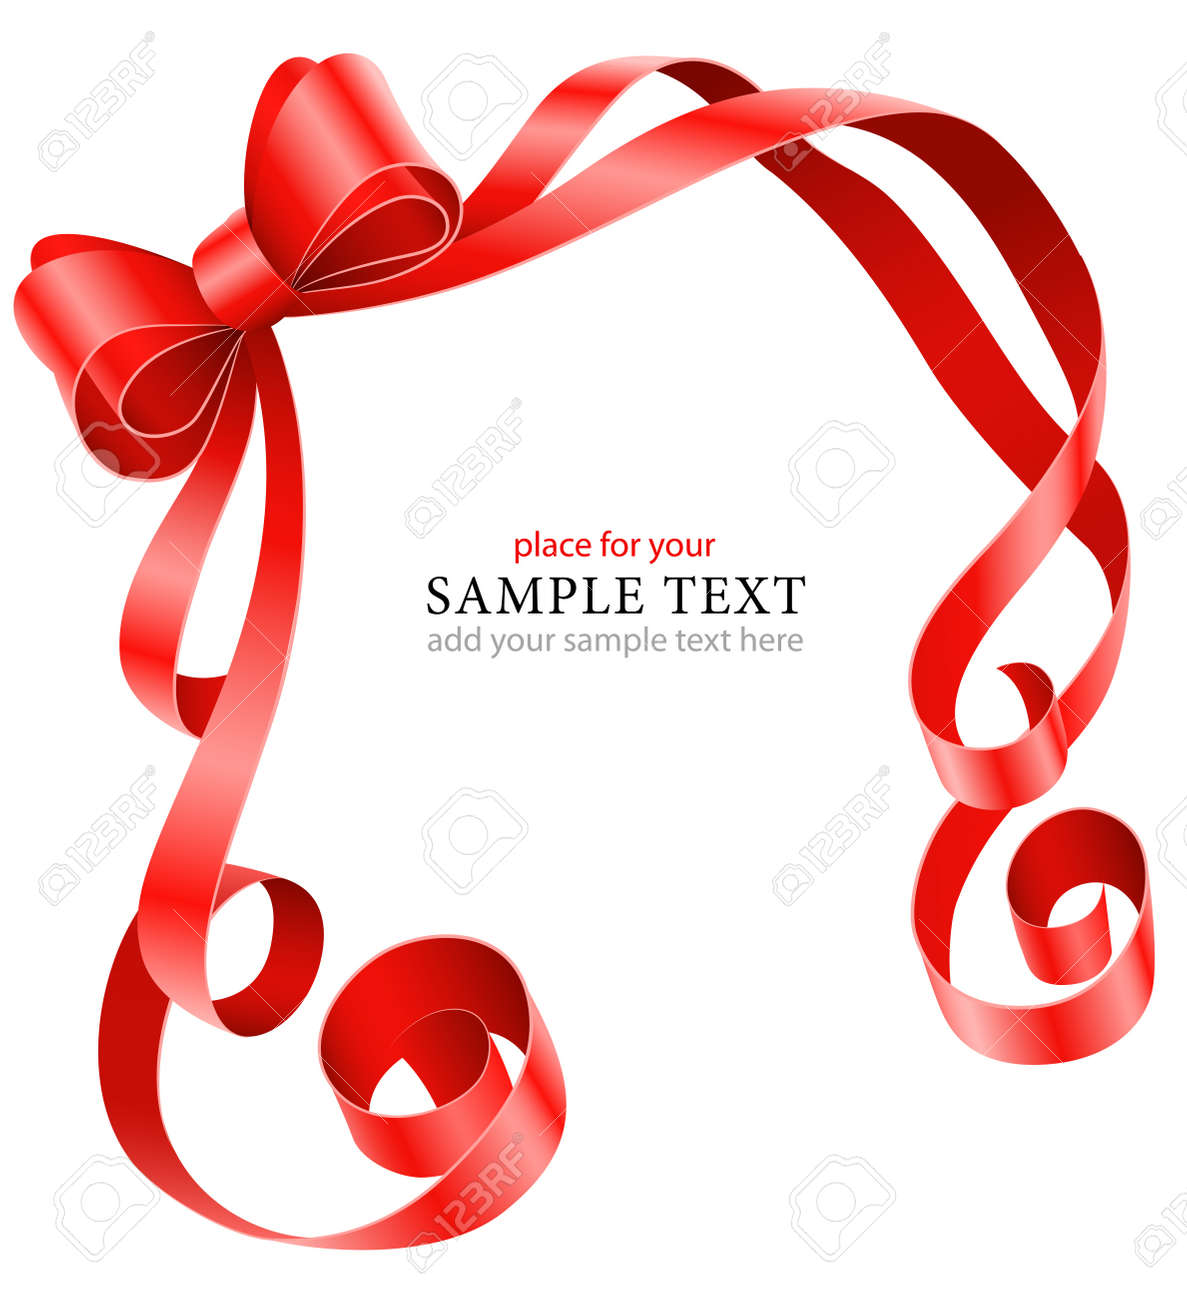 greeting card template with red ribbon and bow illustration isolated on white background Stock Vector - 9830127